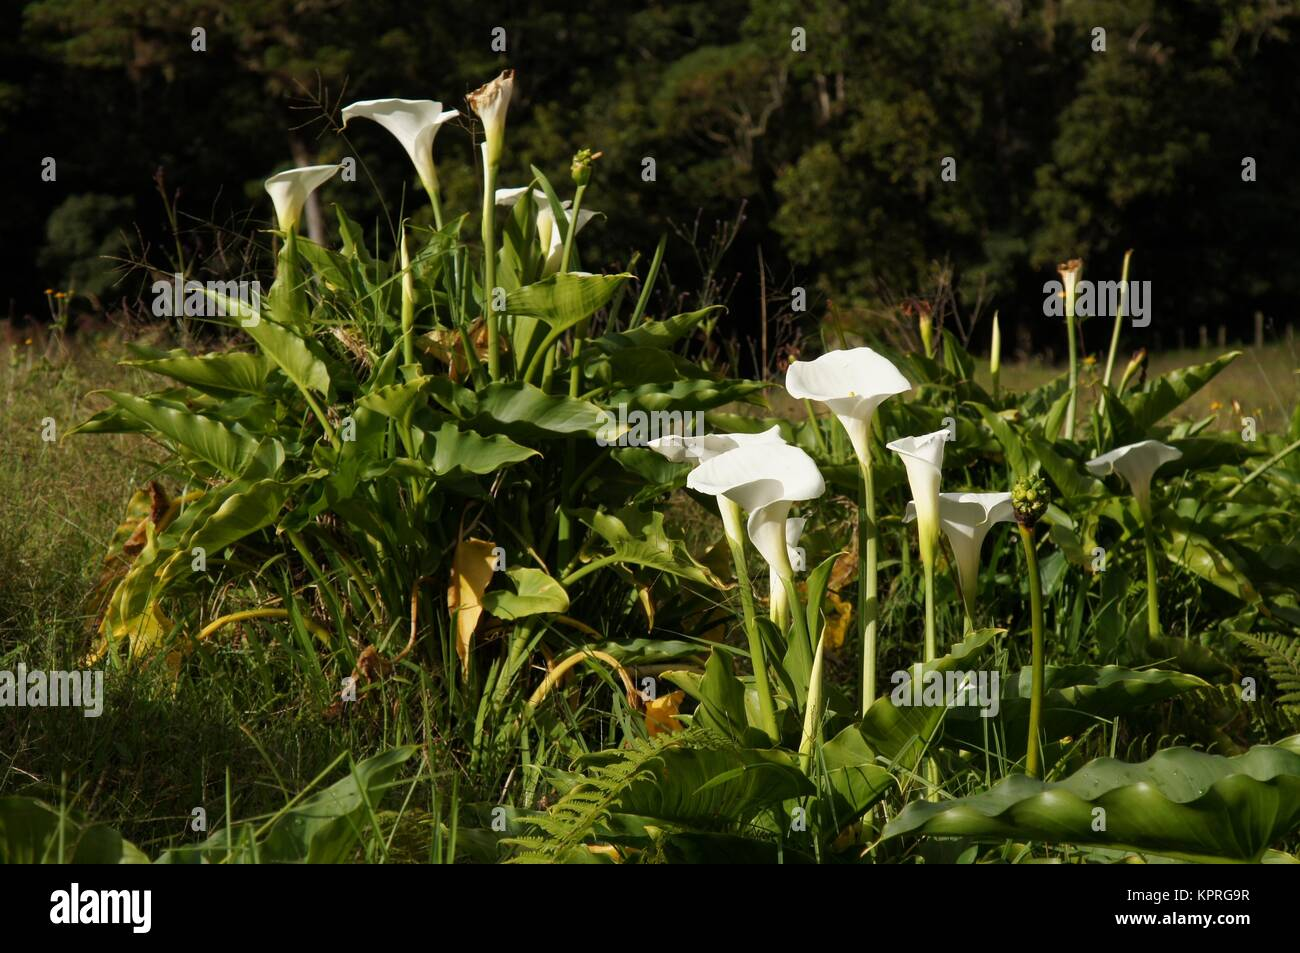 Wild White Calla Lilies Growing In The Meadow Panama Stock Photo